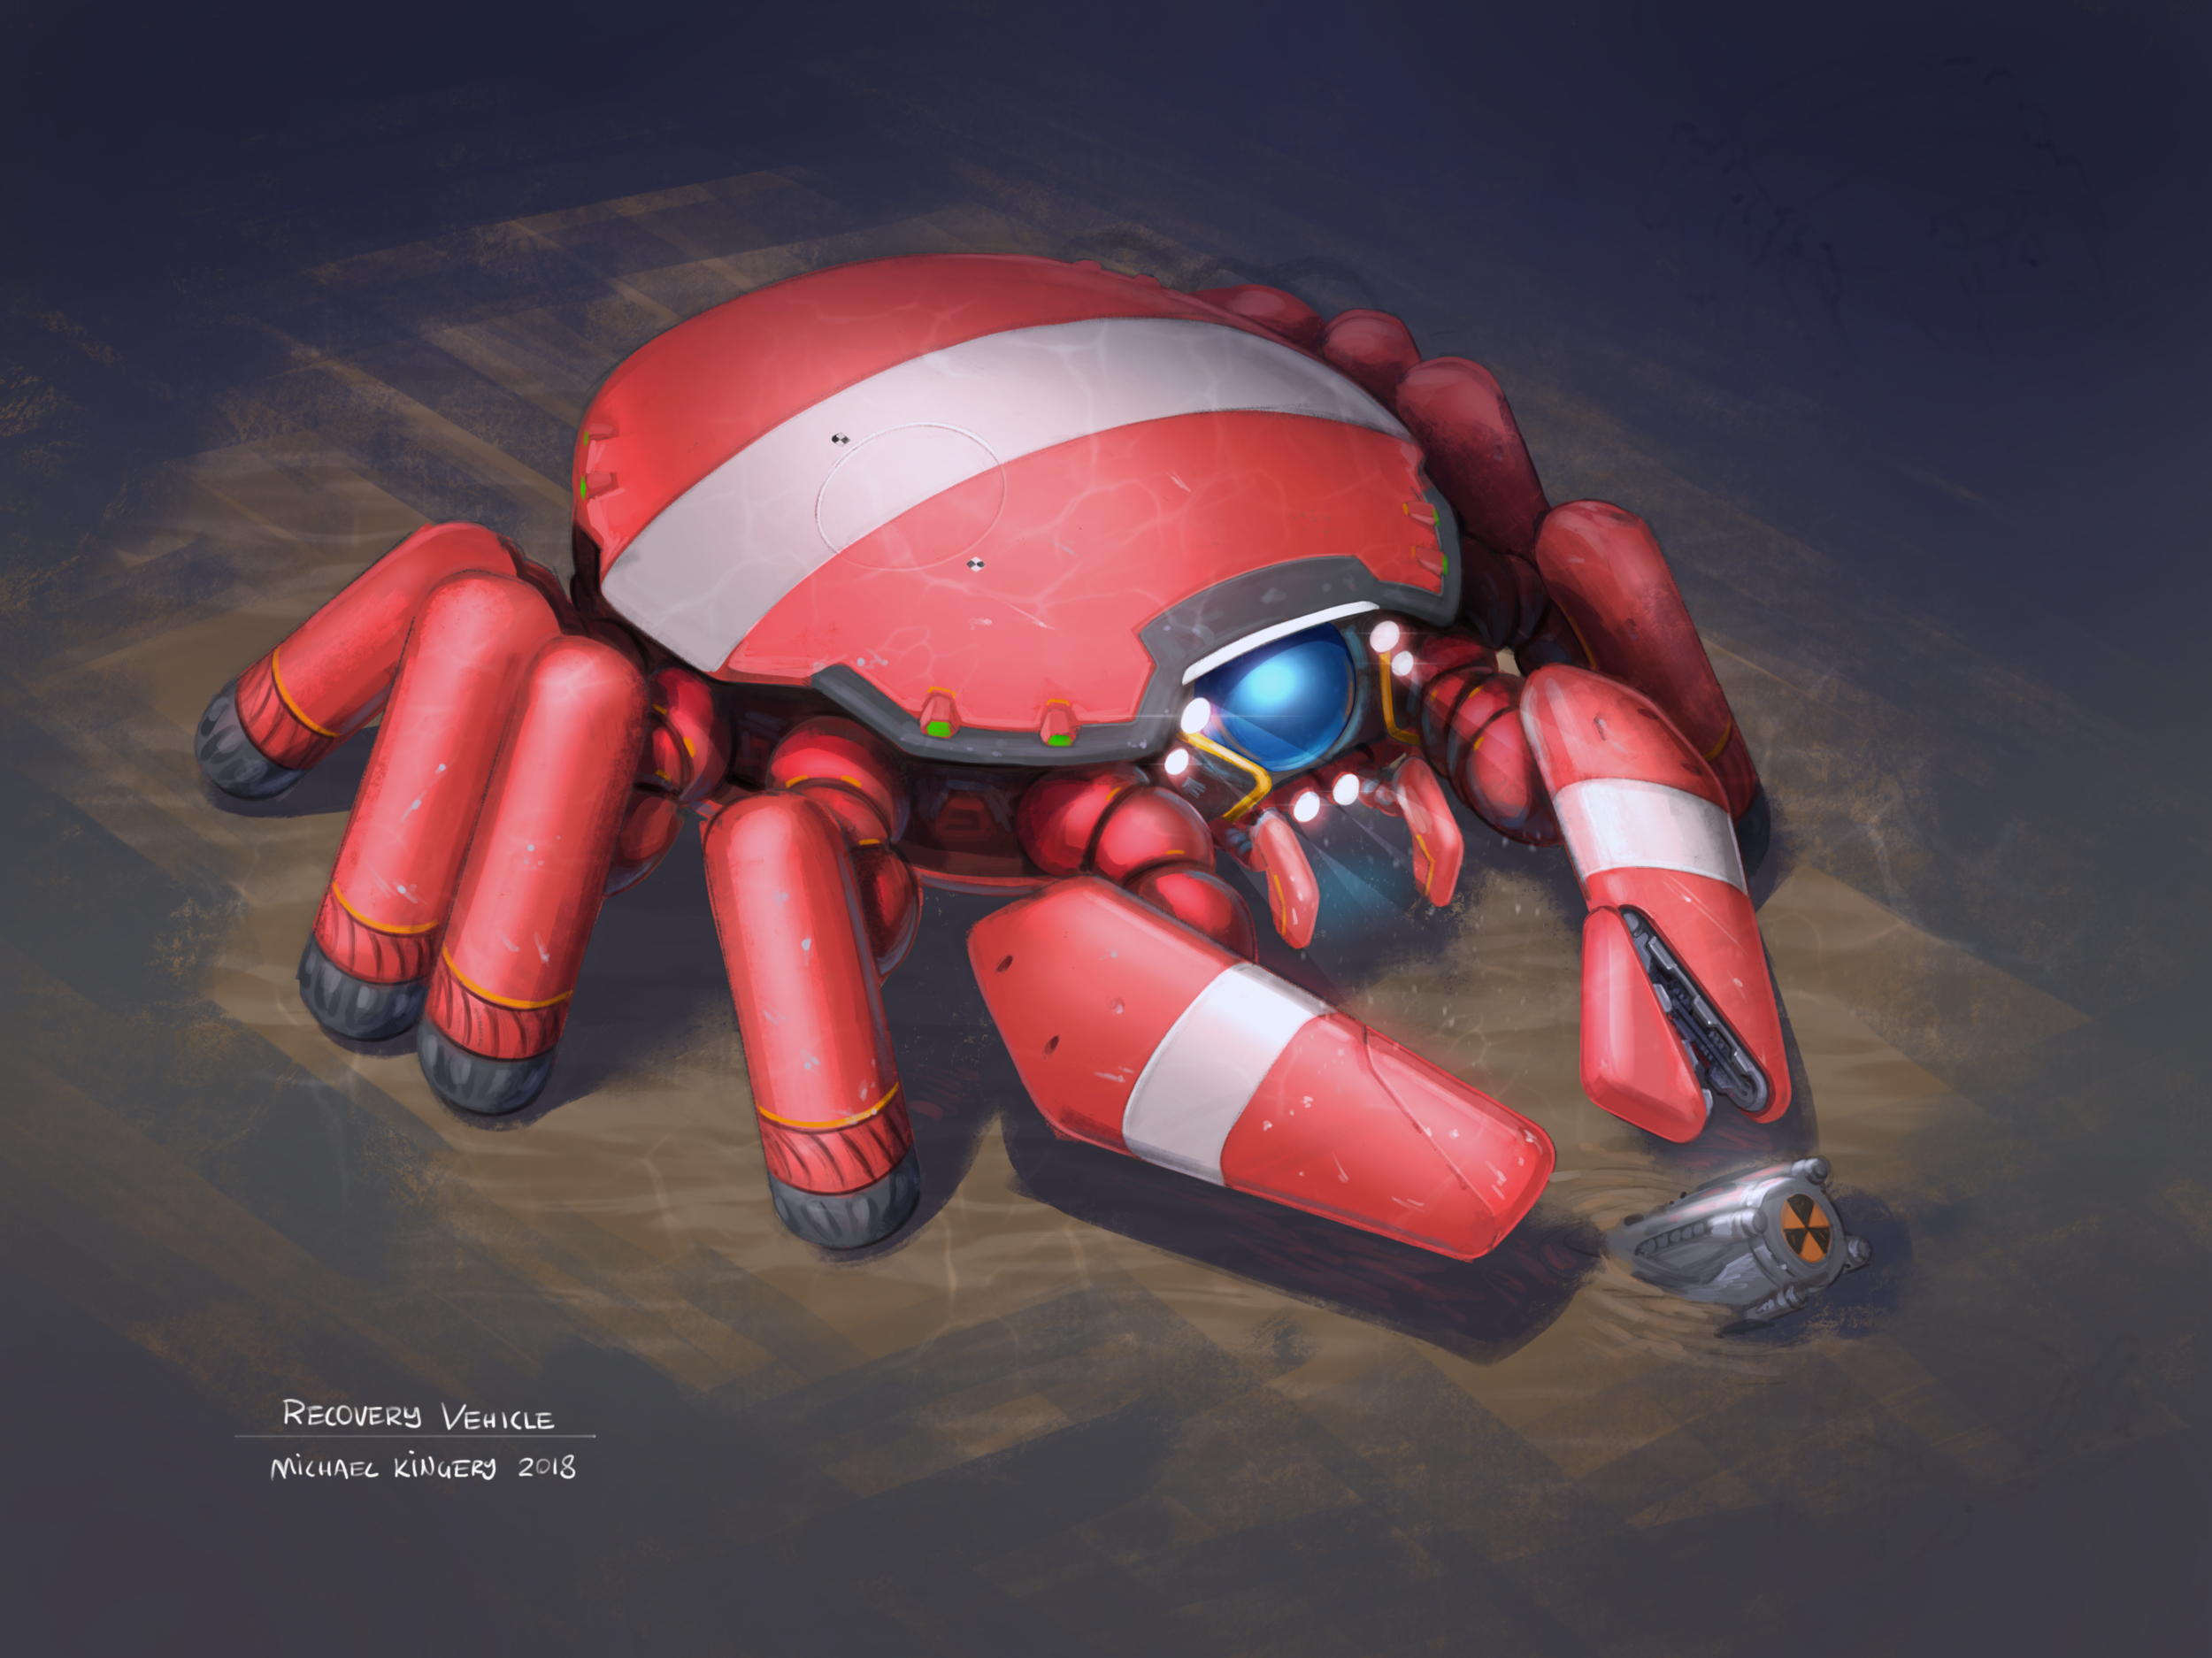 Submersible Recovery Vehicle